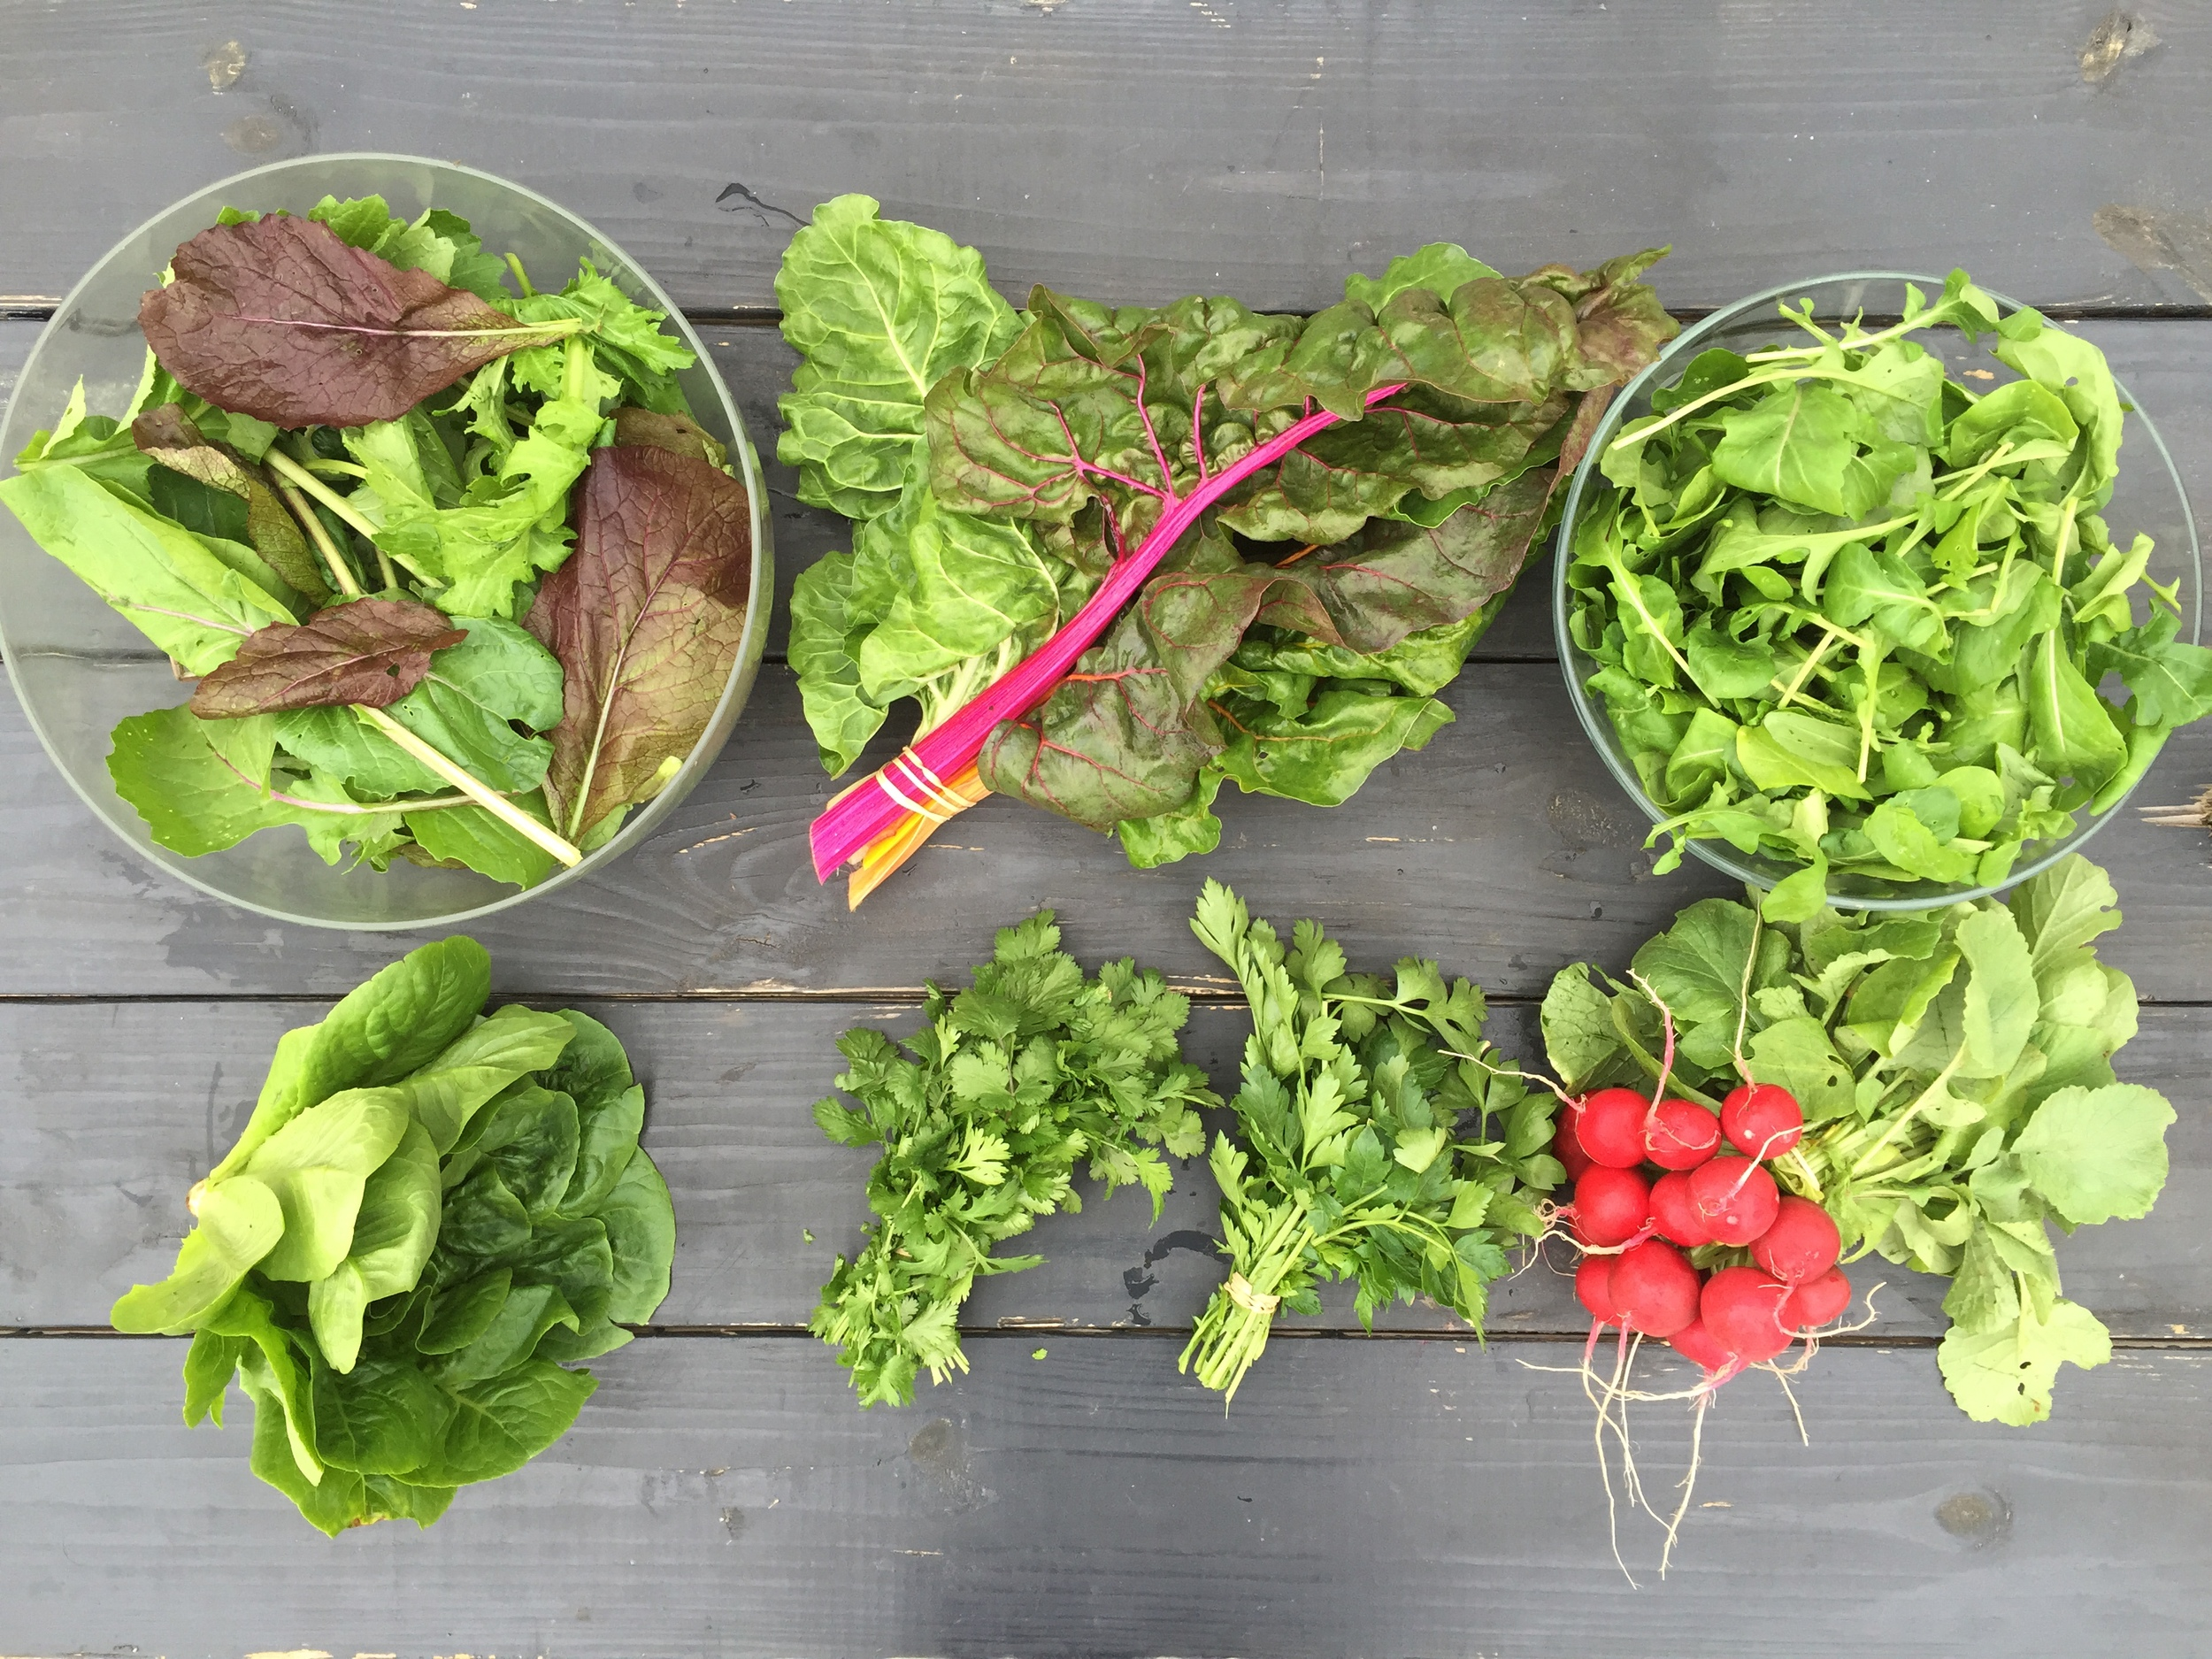 Winter shares feature greens, herbs, root crops, and storage crops. That means salad mix, heads of lettuce, arugula, kale, chard, collards, cabbage, bok choy, cilantro, dill, fennel, parsley, rosemary, extra sweet carrots, beets, juicy salad turnips, radishes, a variety of sweet potatoes, and winter squash.